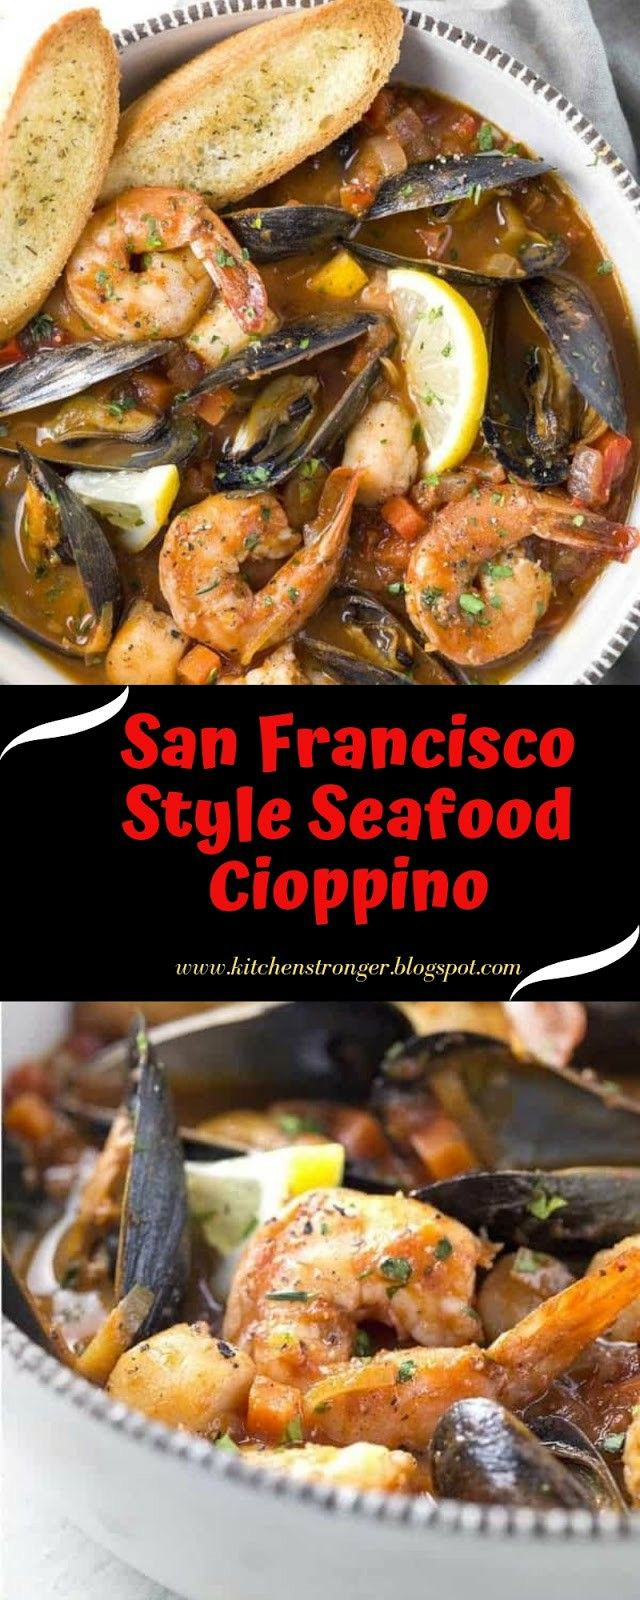 This San Francisco Style Seafood Cioppino Is Loaded With Sparkling Mussels Shrimp And Scallops Simmered In A In 2020 Cooking Seafood Seafood Recipes Fair Food Recipes